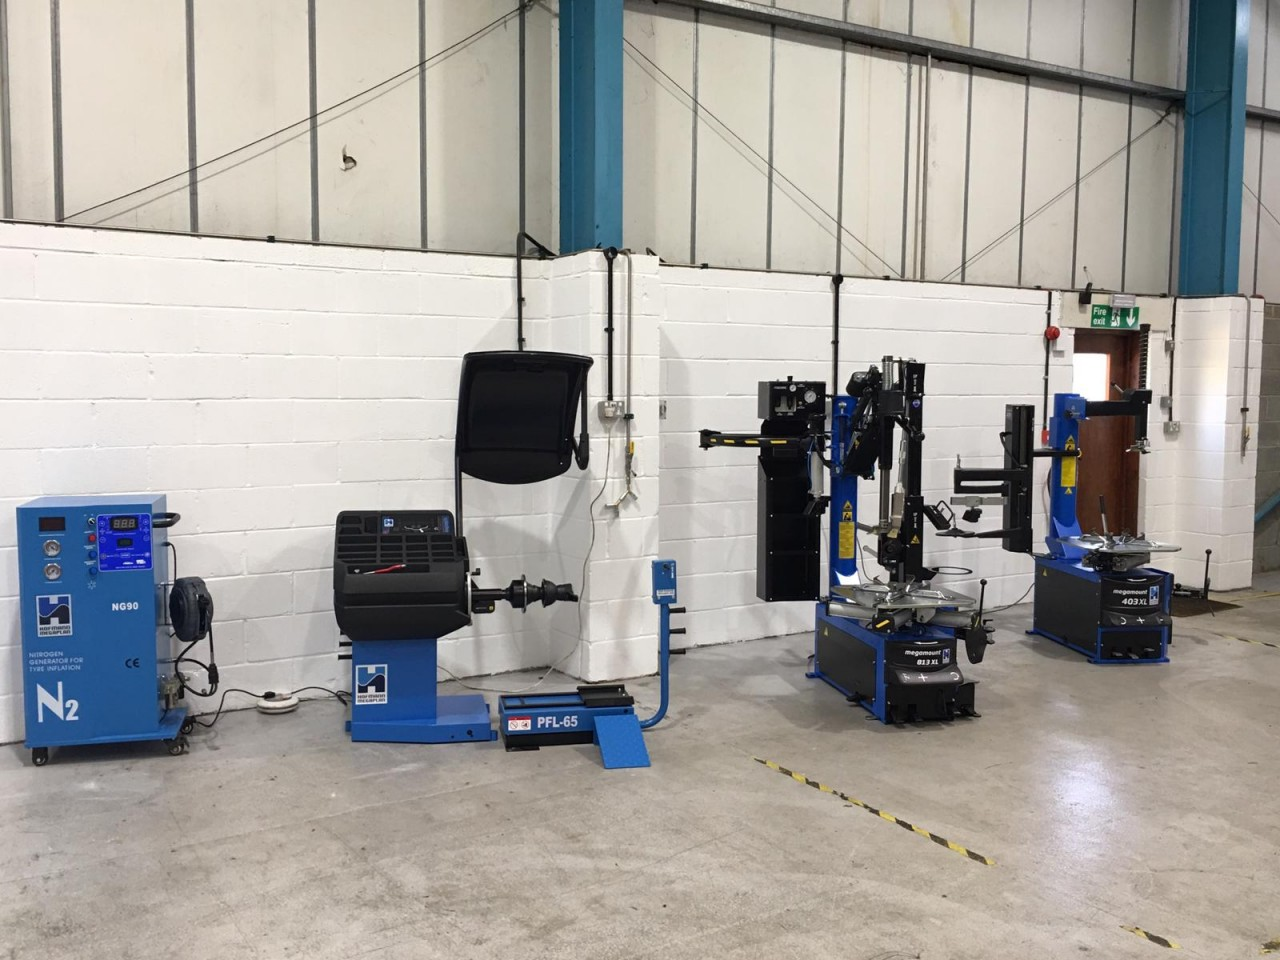 Full garage equipment installation including tyre changers and wheel balancer with One Weight Balance from Hofmann Megaplan.